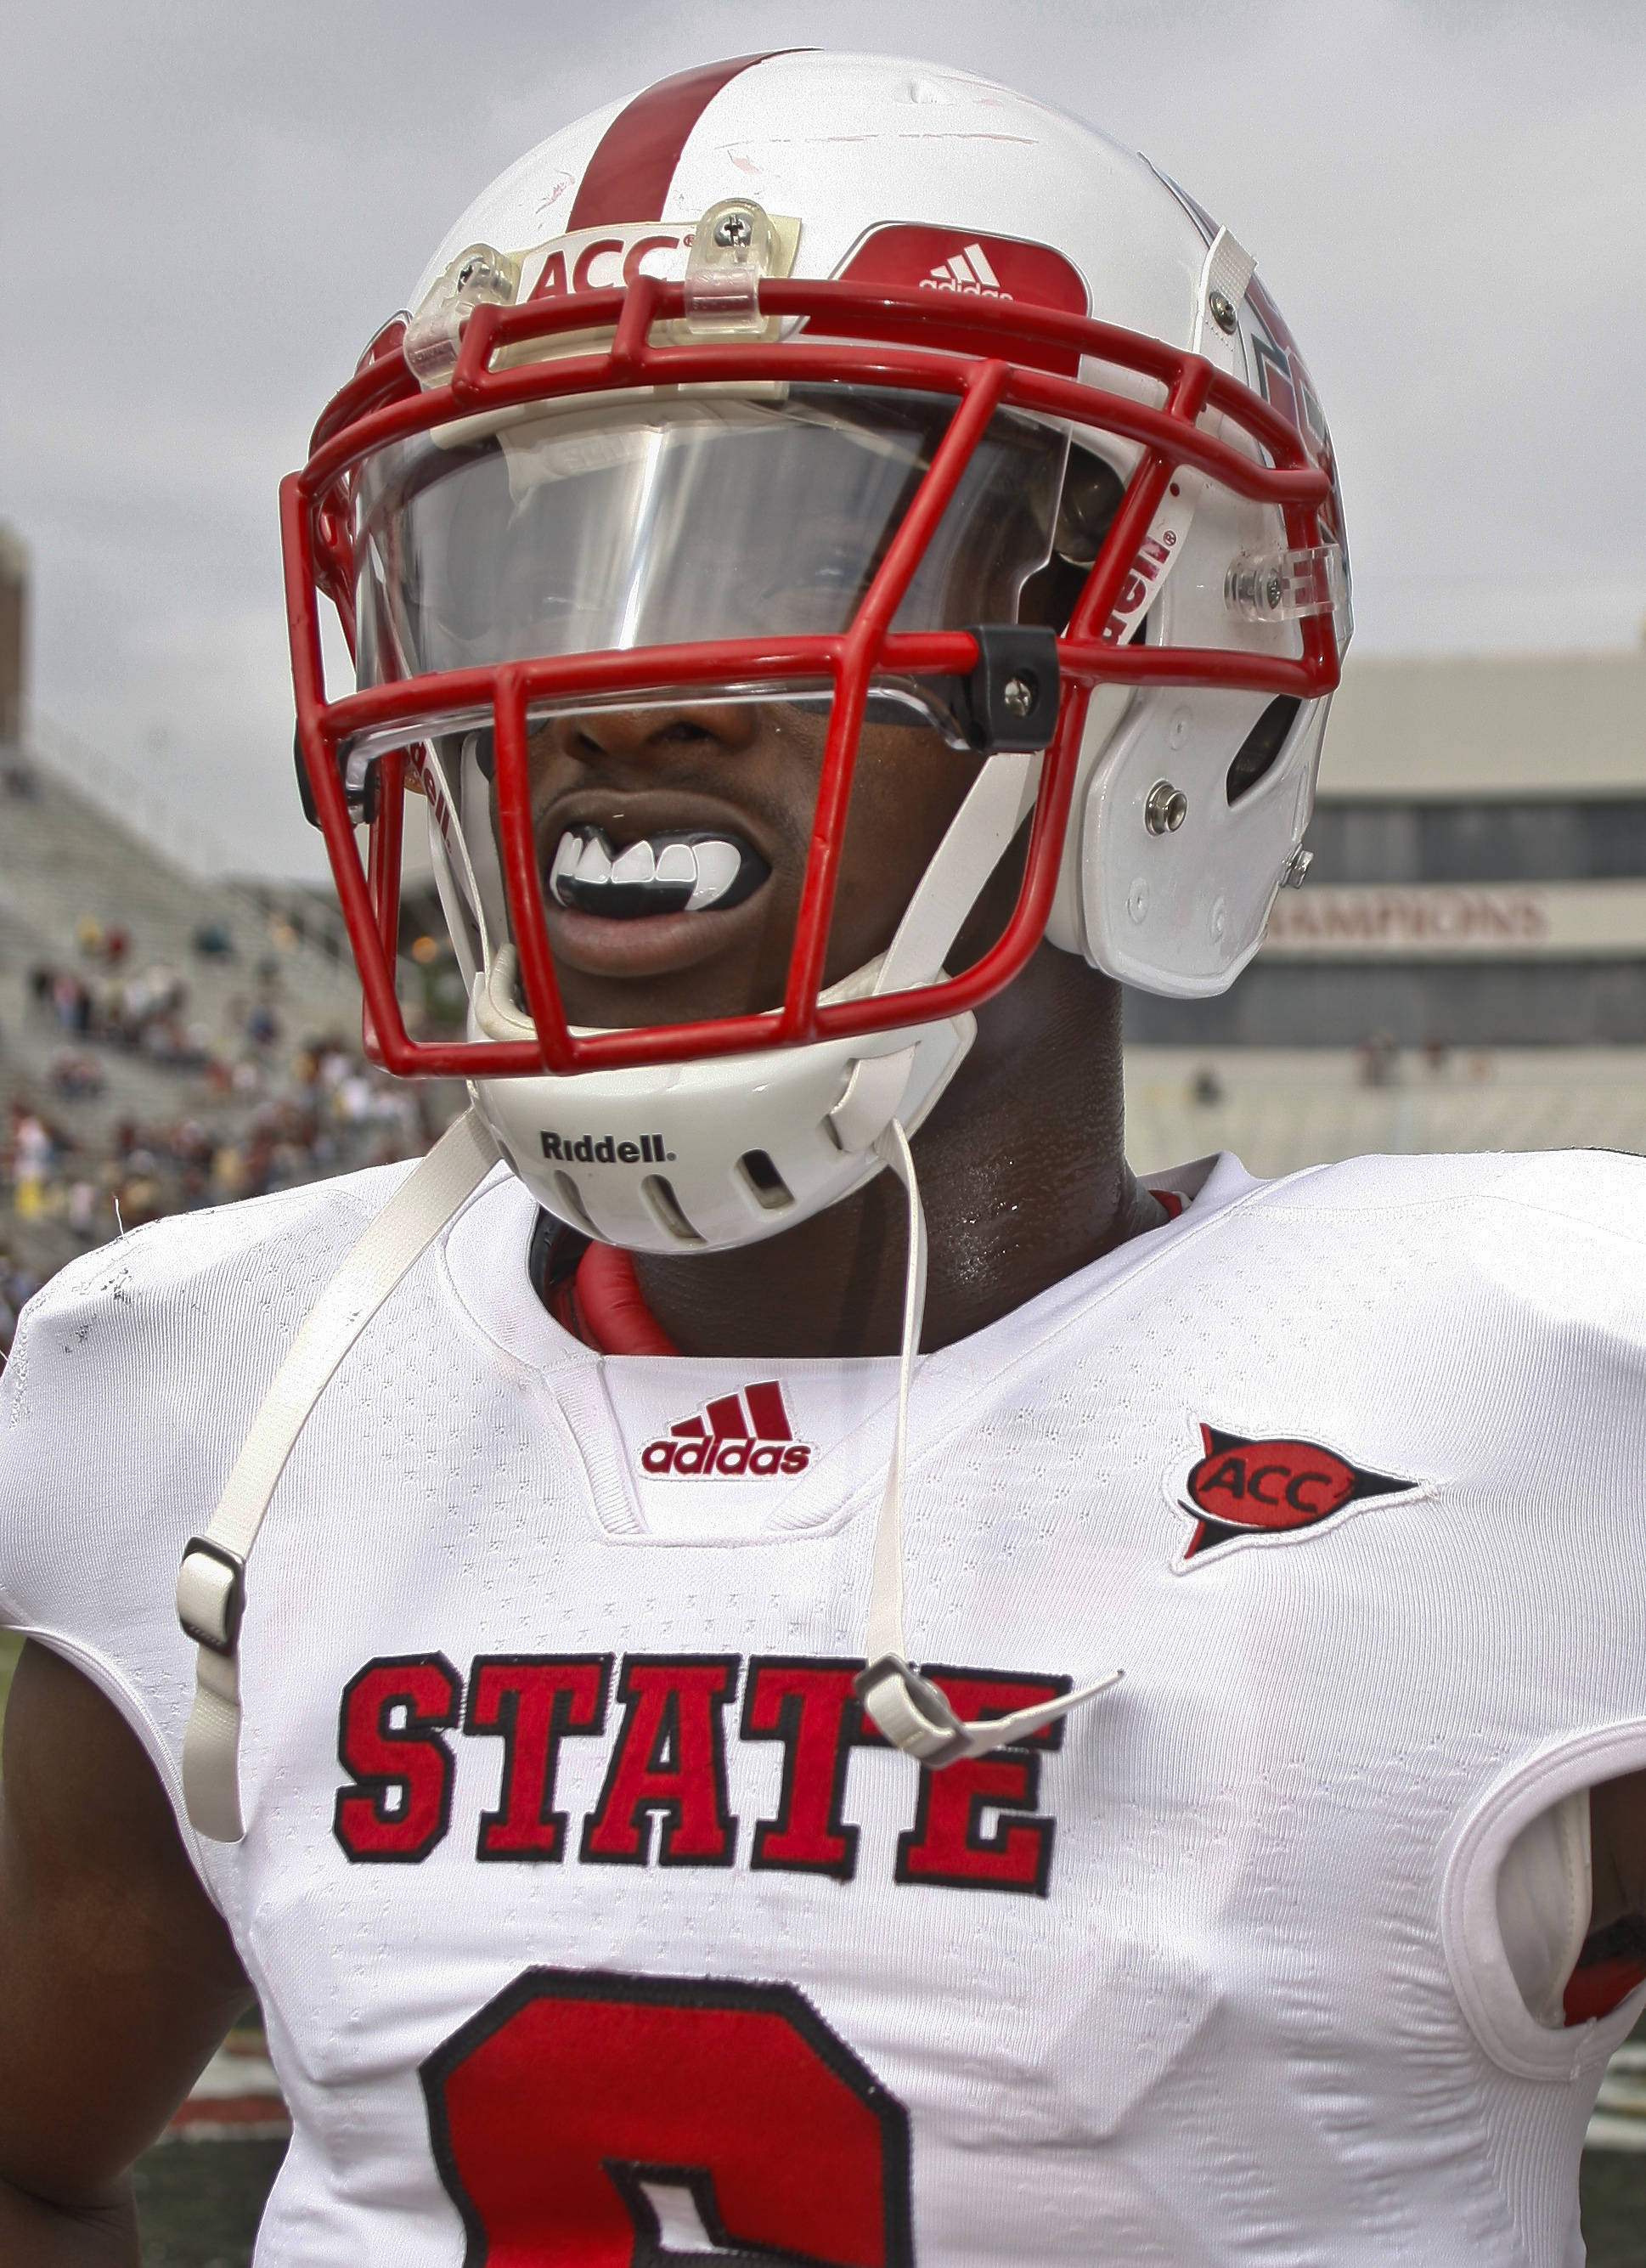 North Carolina State wide receiver T.J. Graham wears a vampire-like mouth protector before the start of an NCAA college football game against Florida State at Doak Campbell Stadium in Tallahassee, Fla., Saturday, Oct. 29, 2011. (AP Photo/Phil Sears)